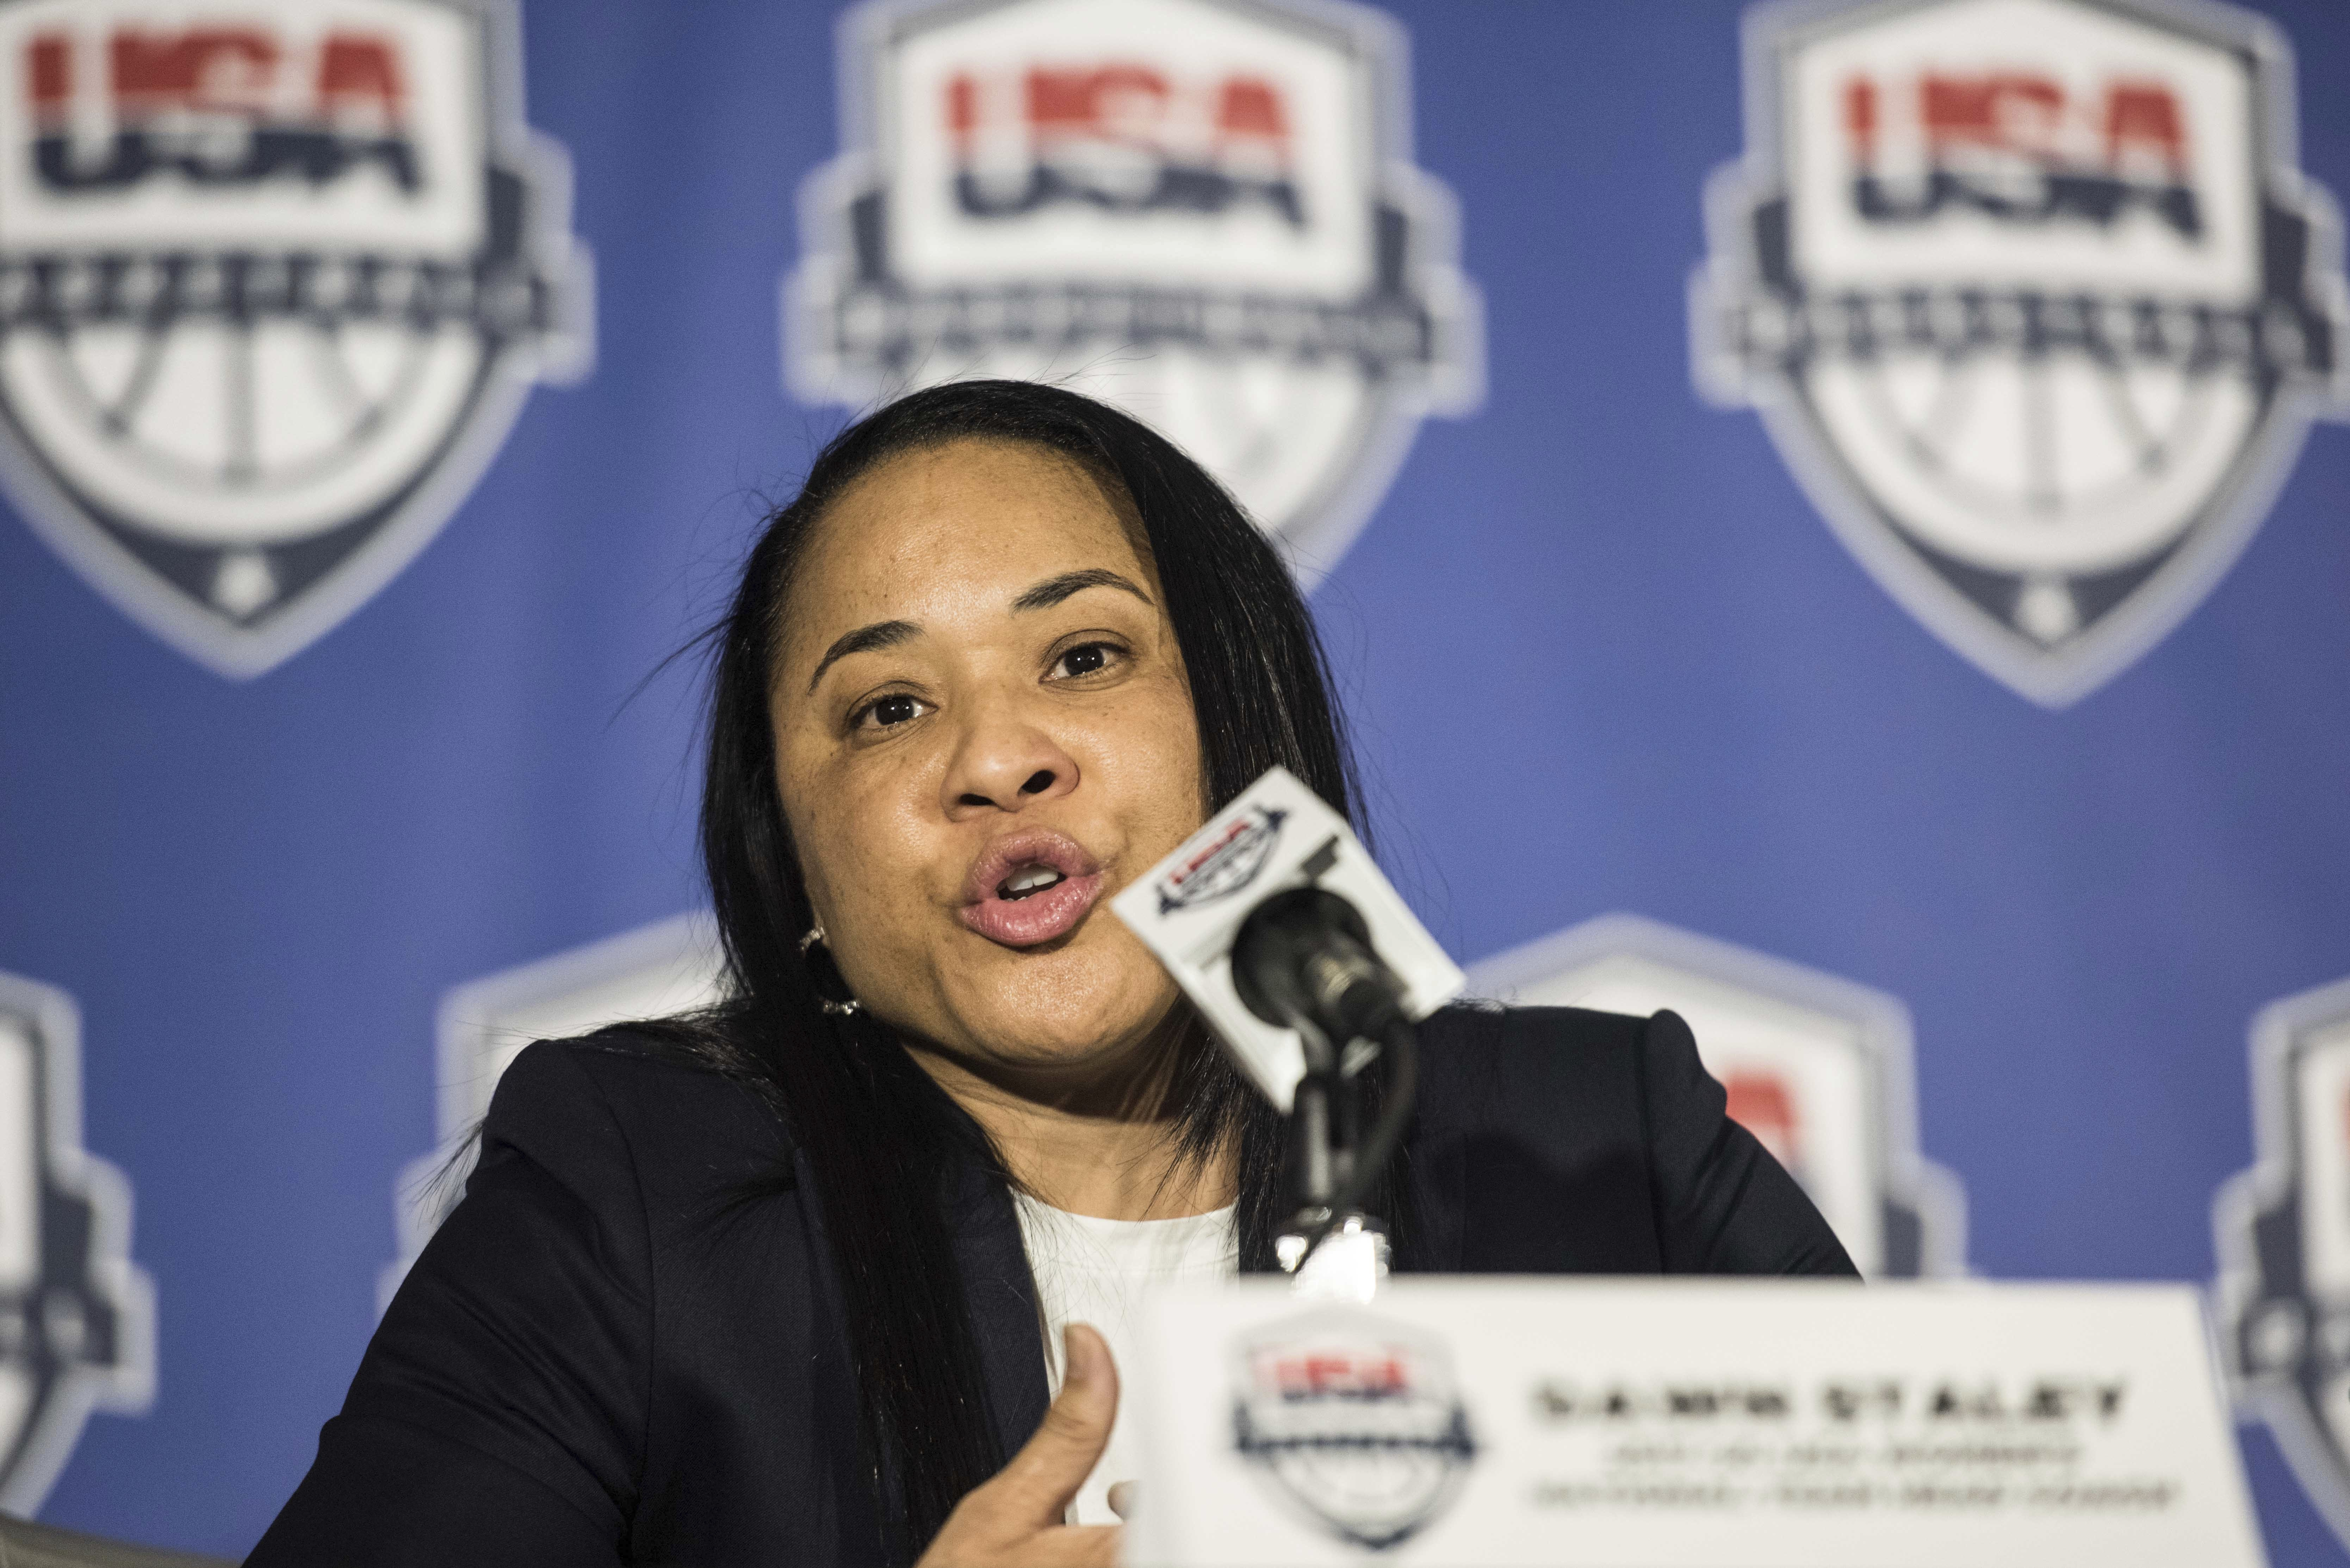 South Carolina women's head basketball coach Dawn Staley addresses the media during a press conference at Williams Brice Stadium, Friday, March 10, 2017, in Columbia, S.C. Staley has been named the women's national team head coach for the 2020 Olympic gam